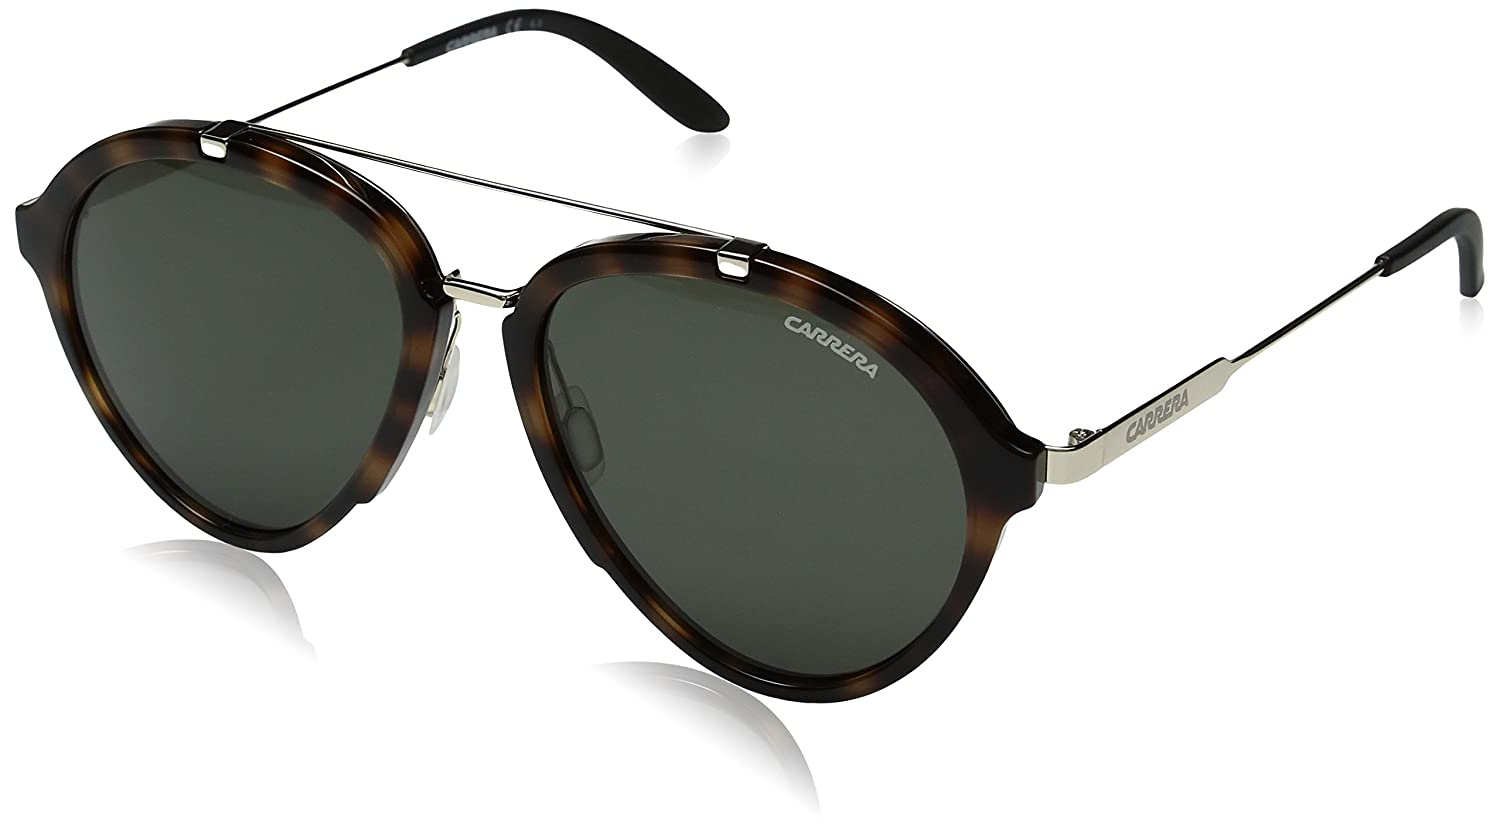 2372ad3a8f55 Amazon.com: Carrera Men's Ca125s Aviator Sunglasses, Havana Gold/Green, 54  mm: Clothing